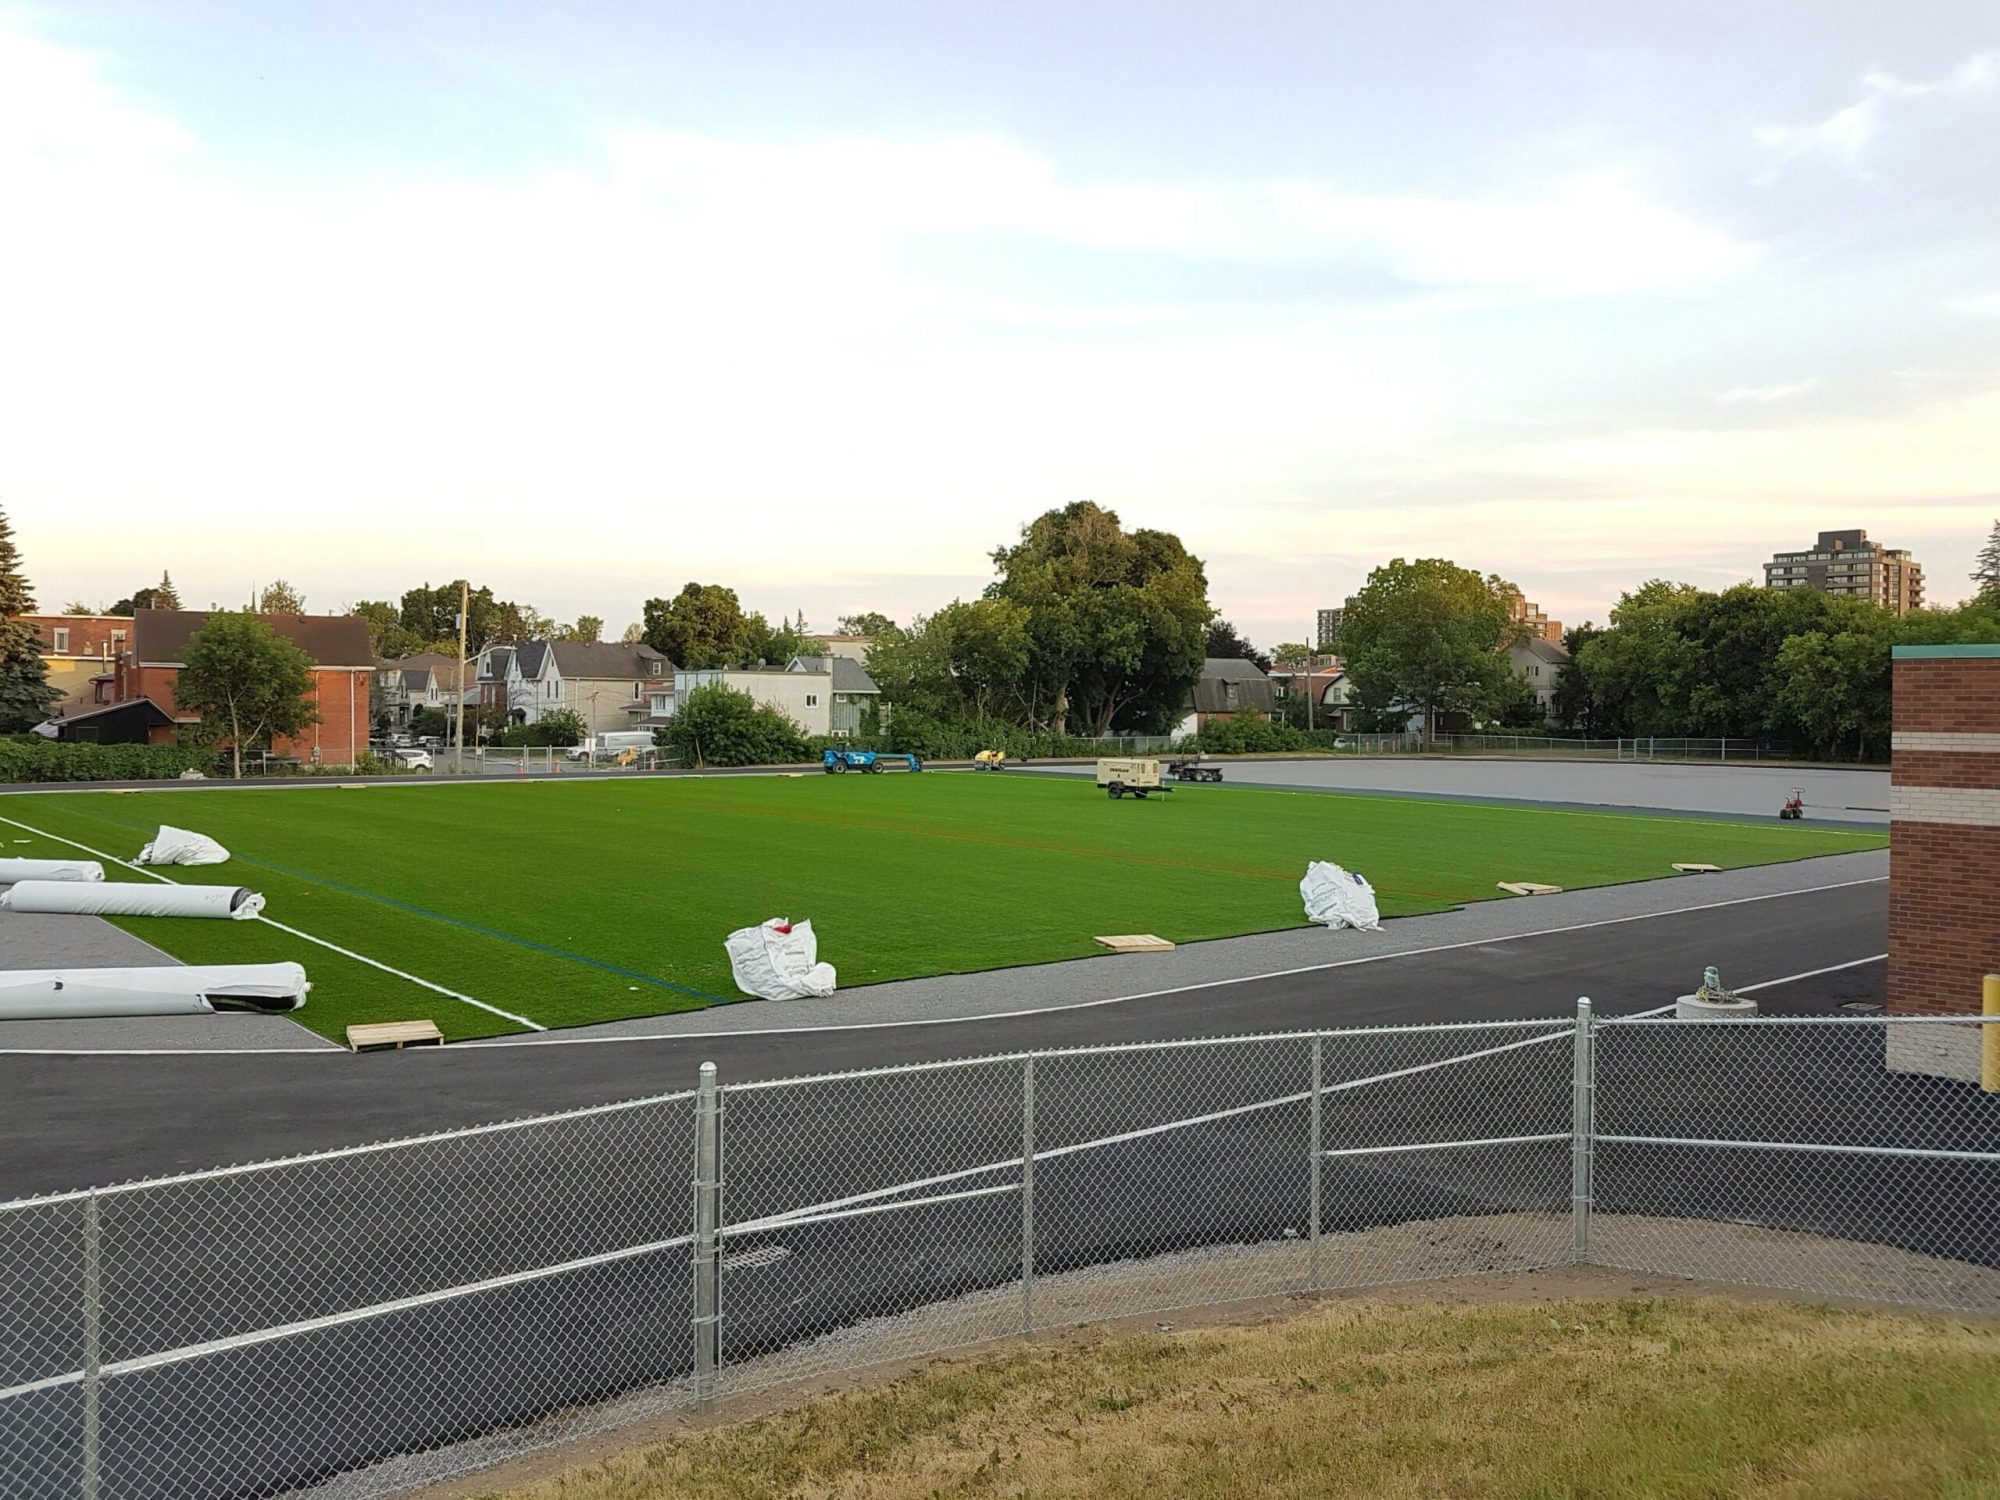 New turf soccer field at Immaculata High School